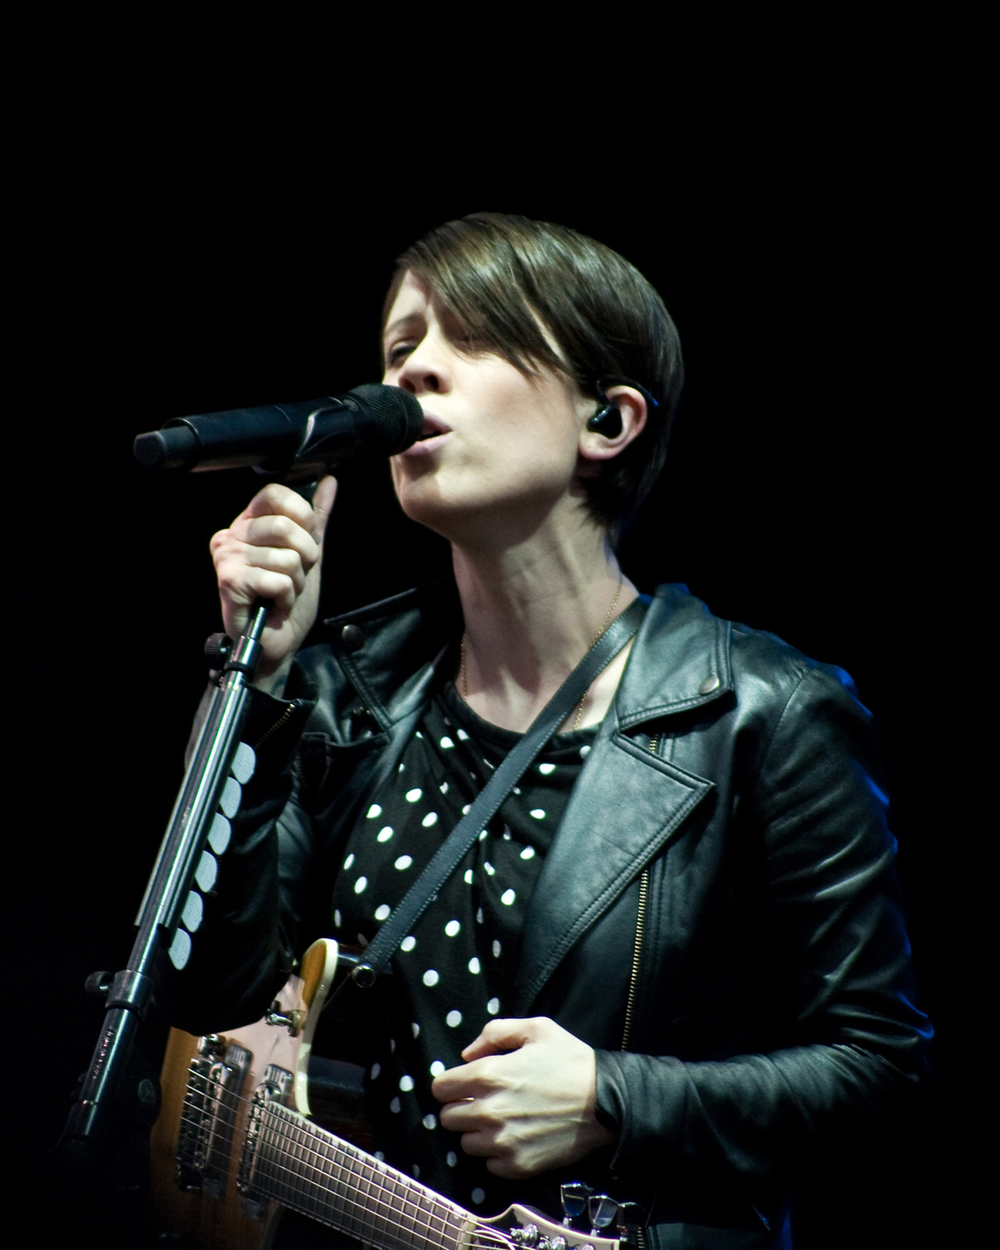 Sara Quin of Tegan and Sara